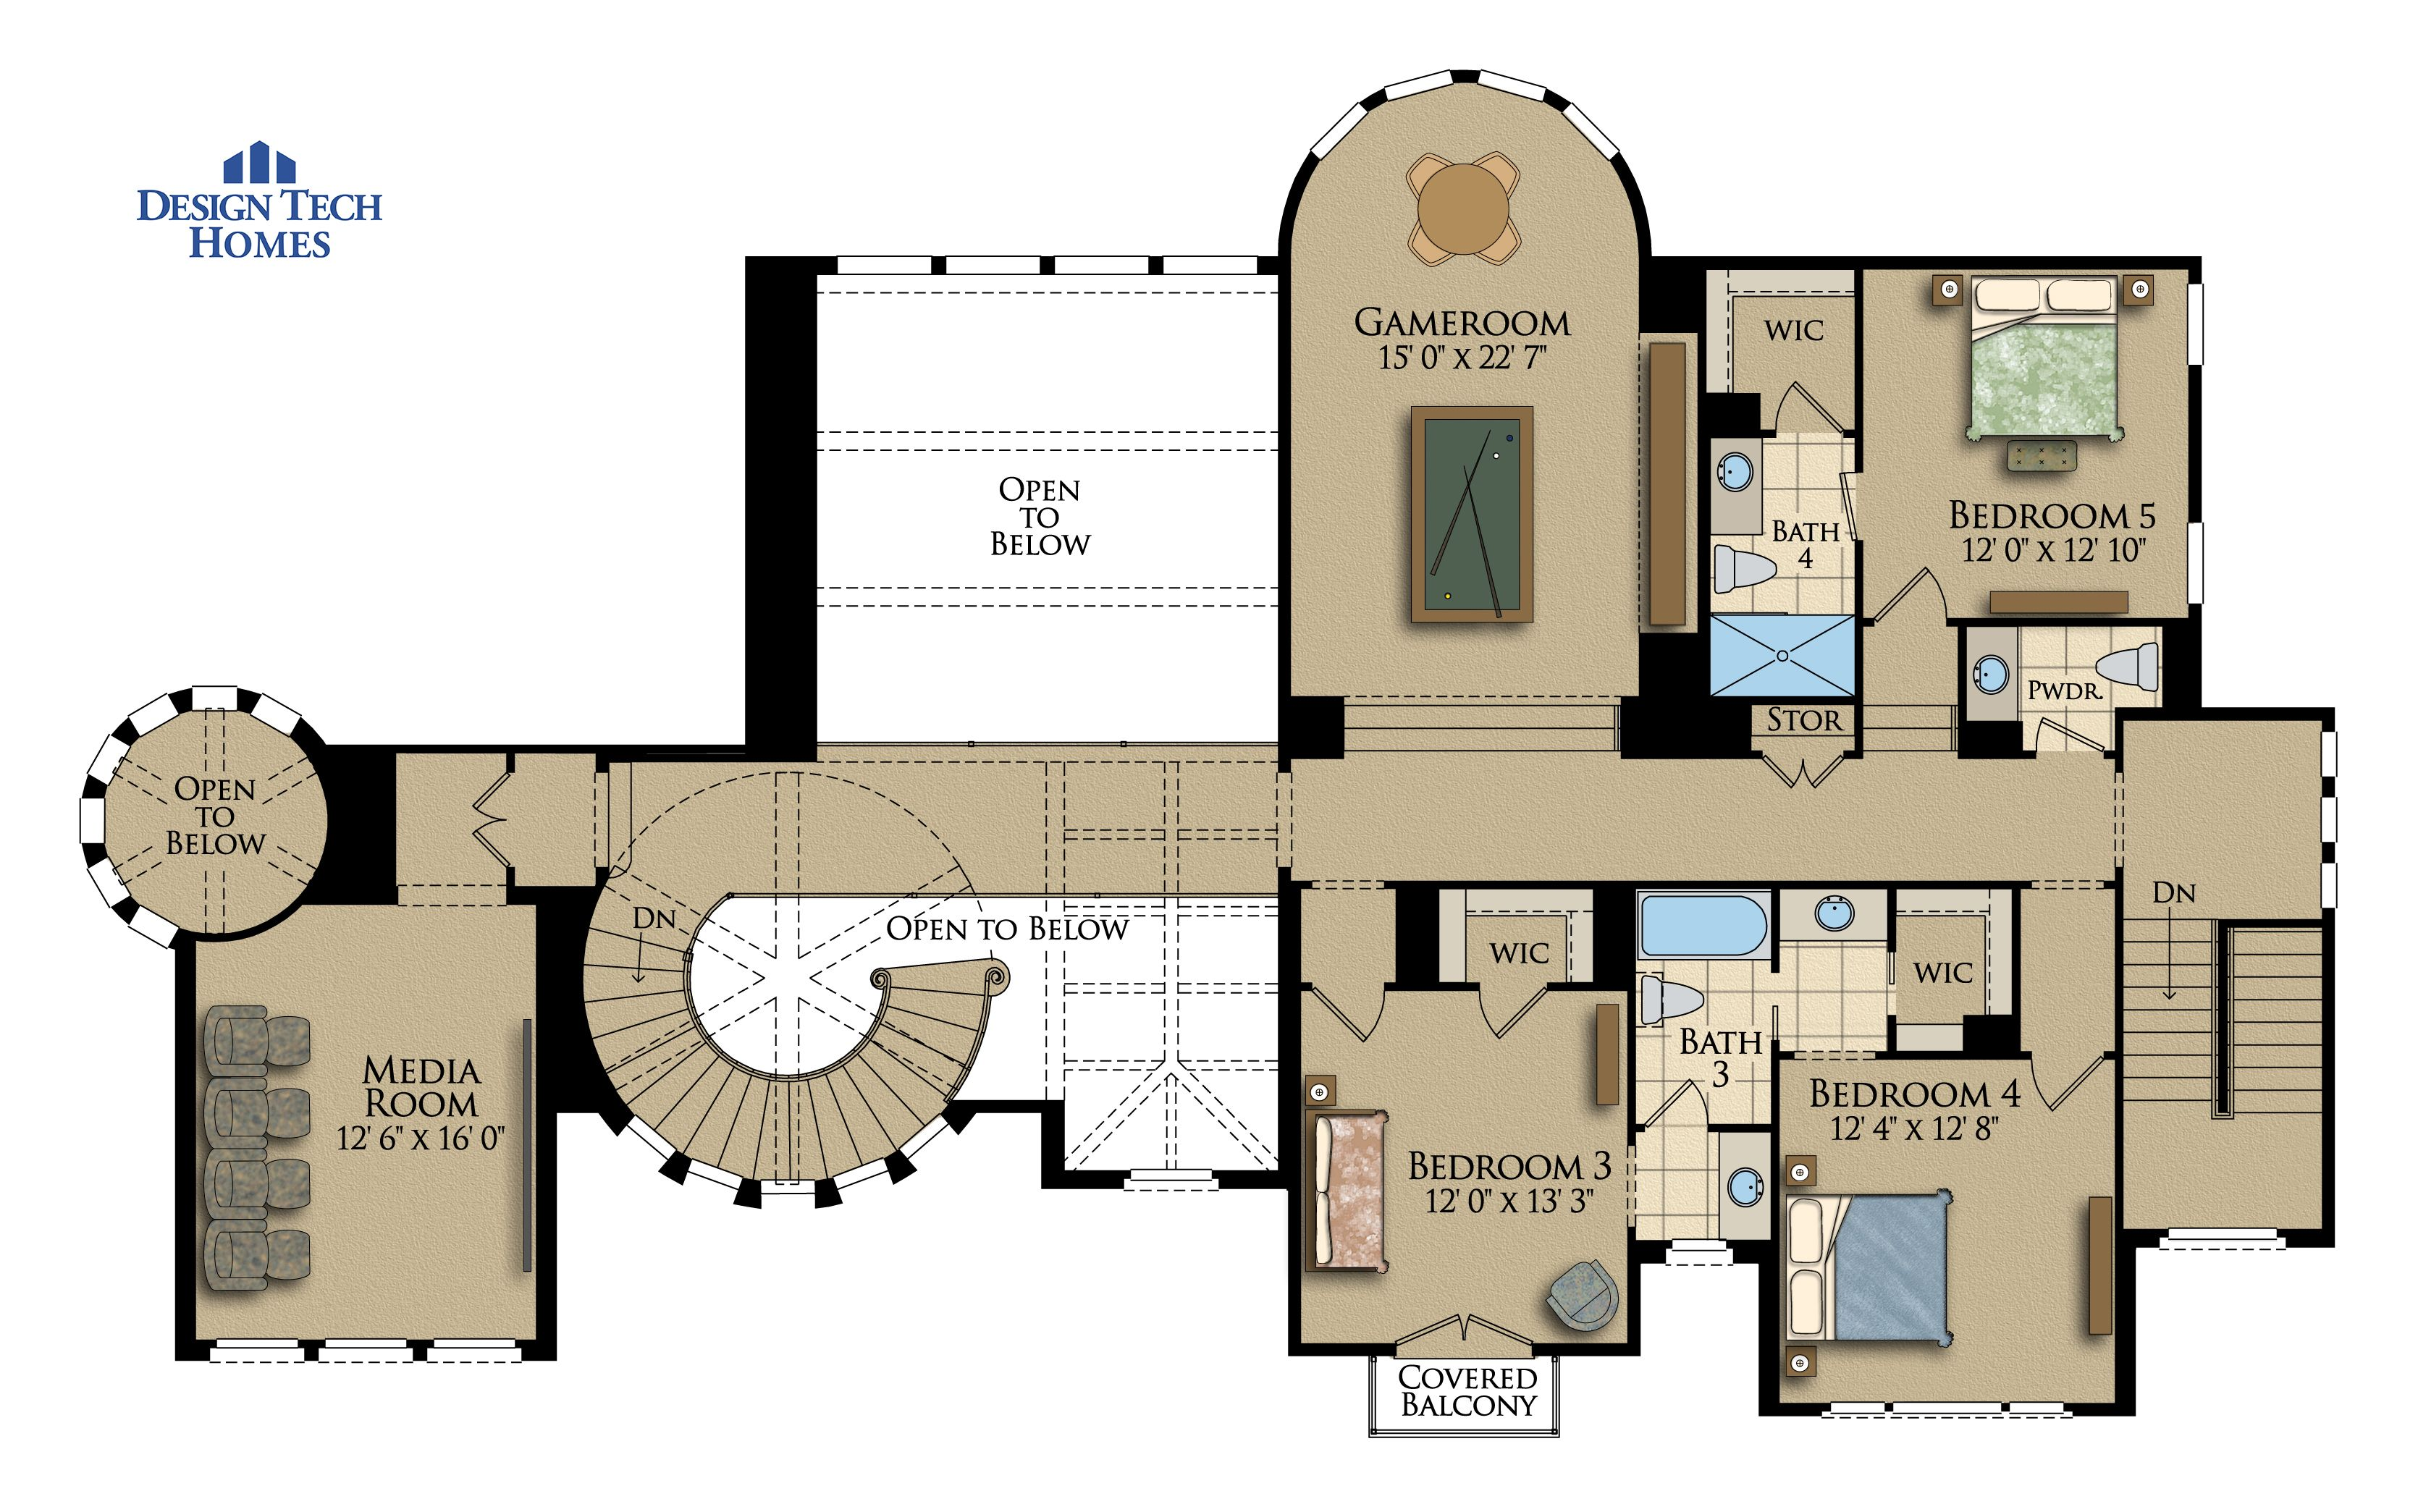 6,159 Sq Ft House Plan - 5 Bed 4 + 2 Half Bath, 2 Story - The Villa ...